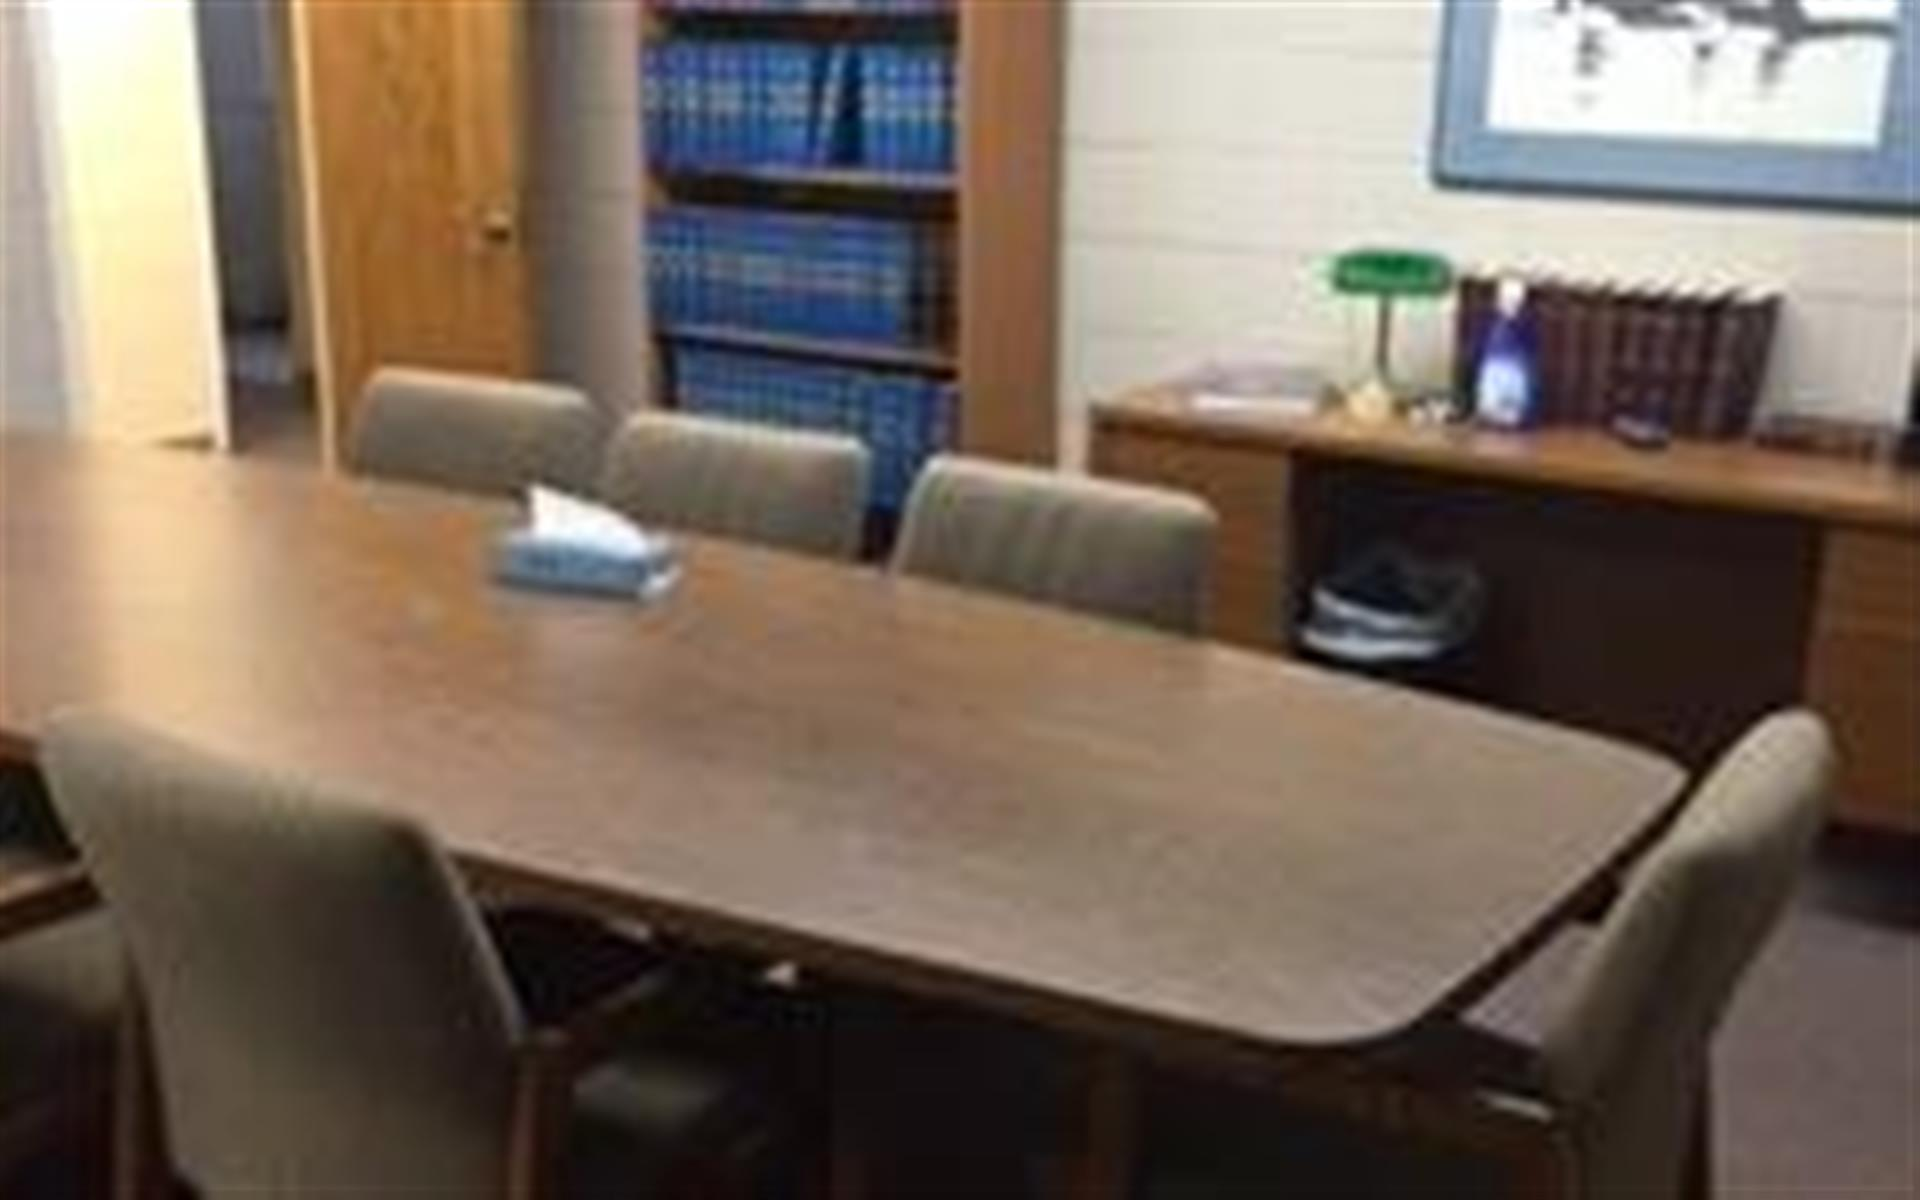 Law Resources Center - Small conference room video conferencing